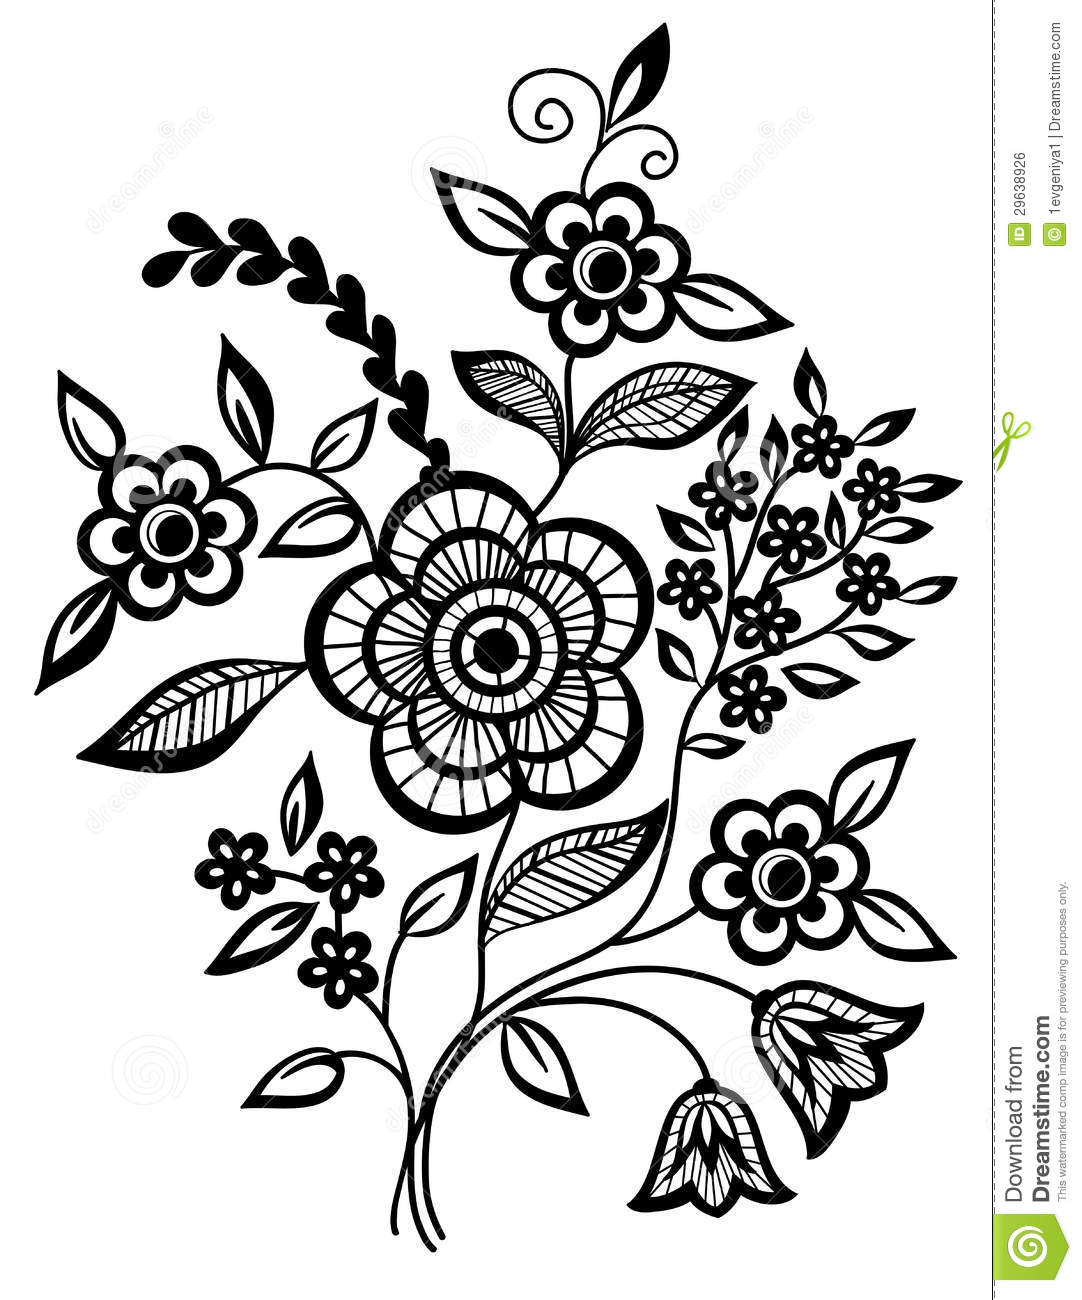 Black Flower Pattern Stock Images: Black-and-white Flowers And Leaves Design Element Stock